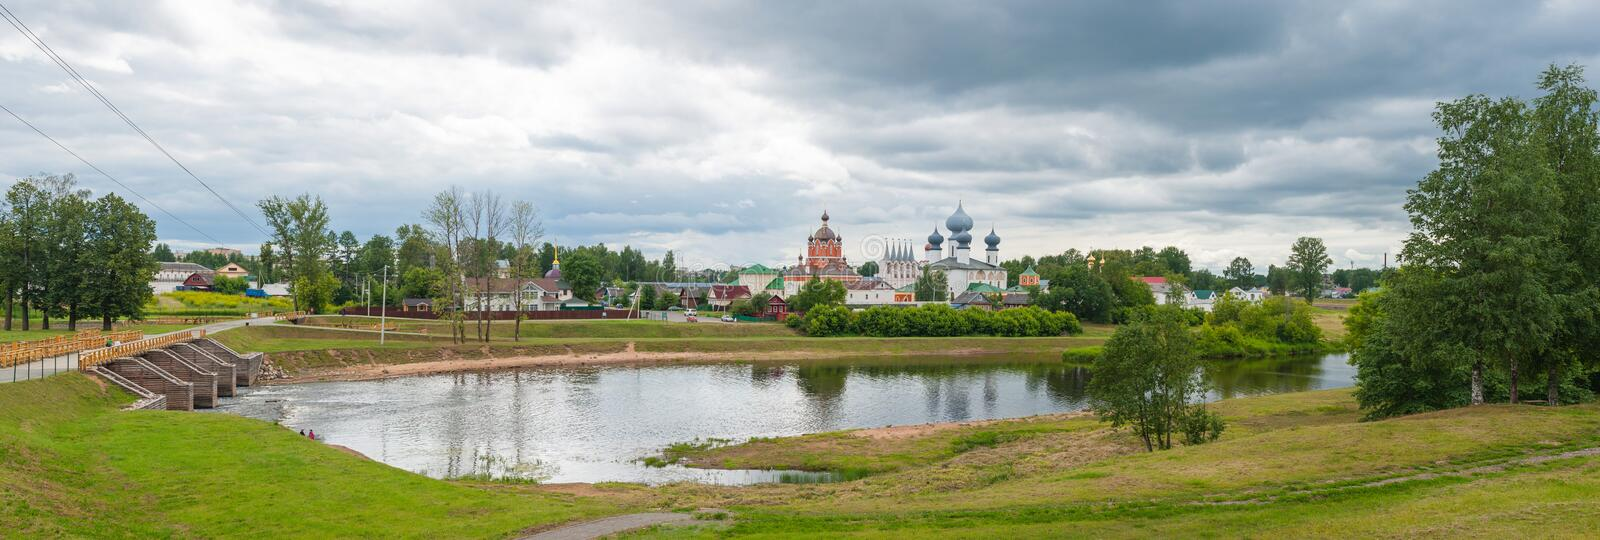 Tikhvin Assumption Monastery. View of the Tikhvin Assumption Monastery in Tikhvin, Russia, with the Tikhvinka river in the foreground stock photos